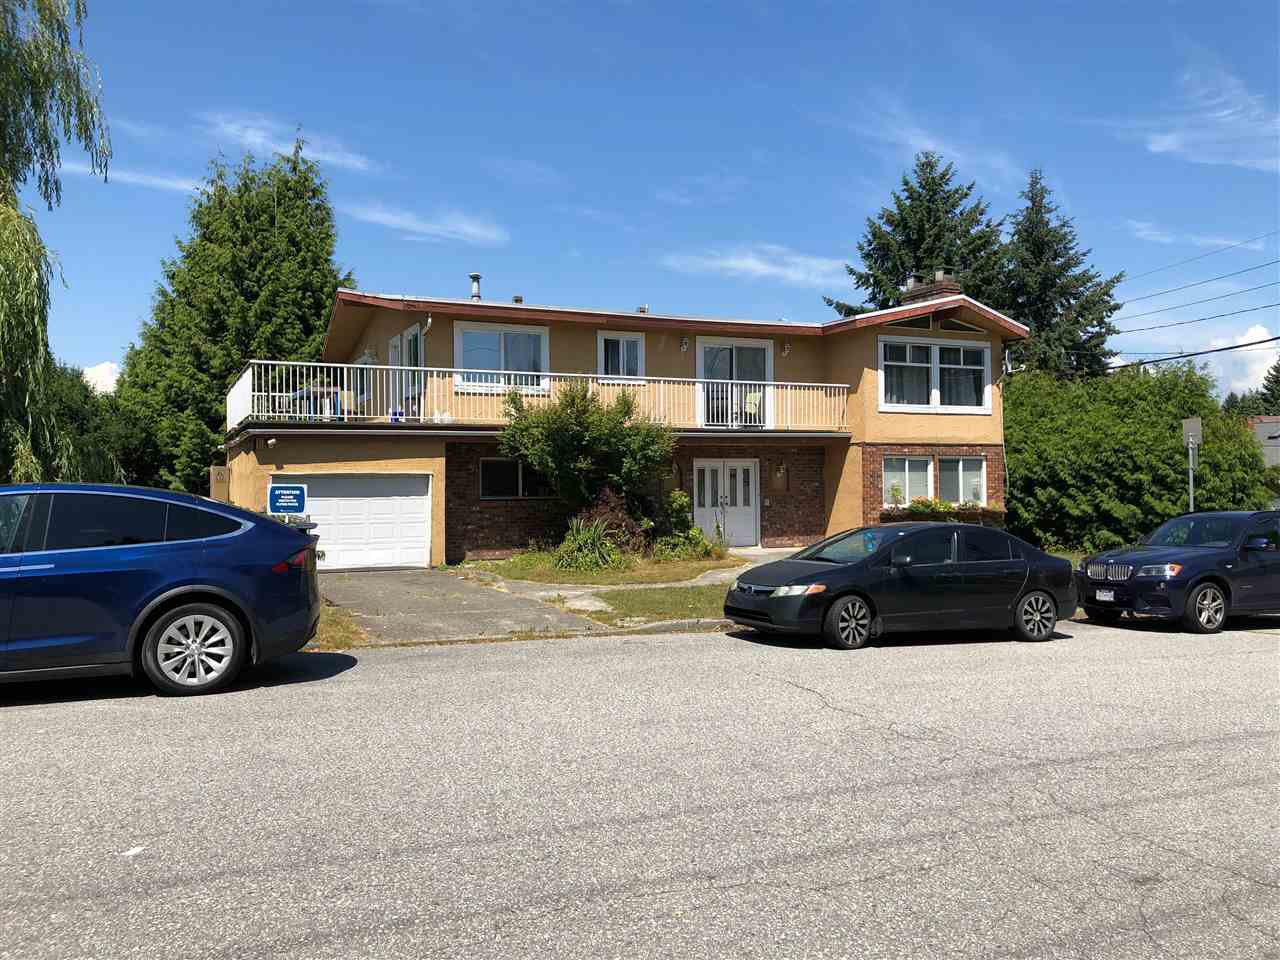 """Main Photo: 5185 WOODSWORTH Street in Burnaby: Greentree Village House for sale in """"DOUGLAS-GILPIN BURNABY SOUTH"""" (Burnaby South)  : MLS®# R2382918"""